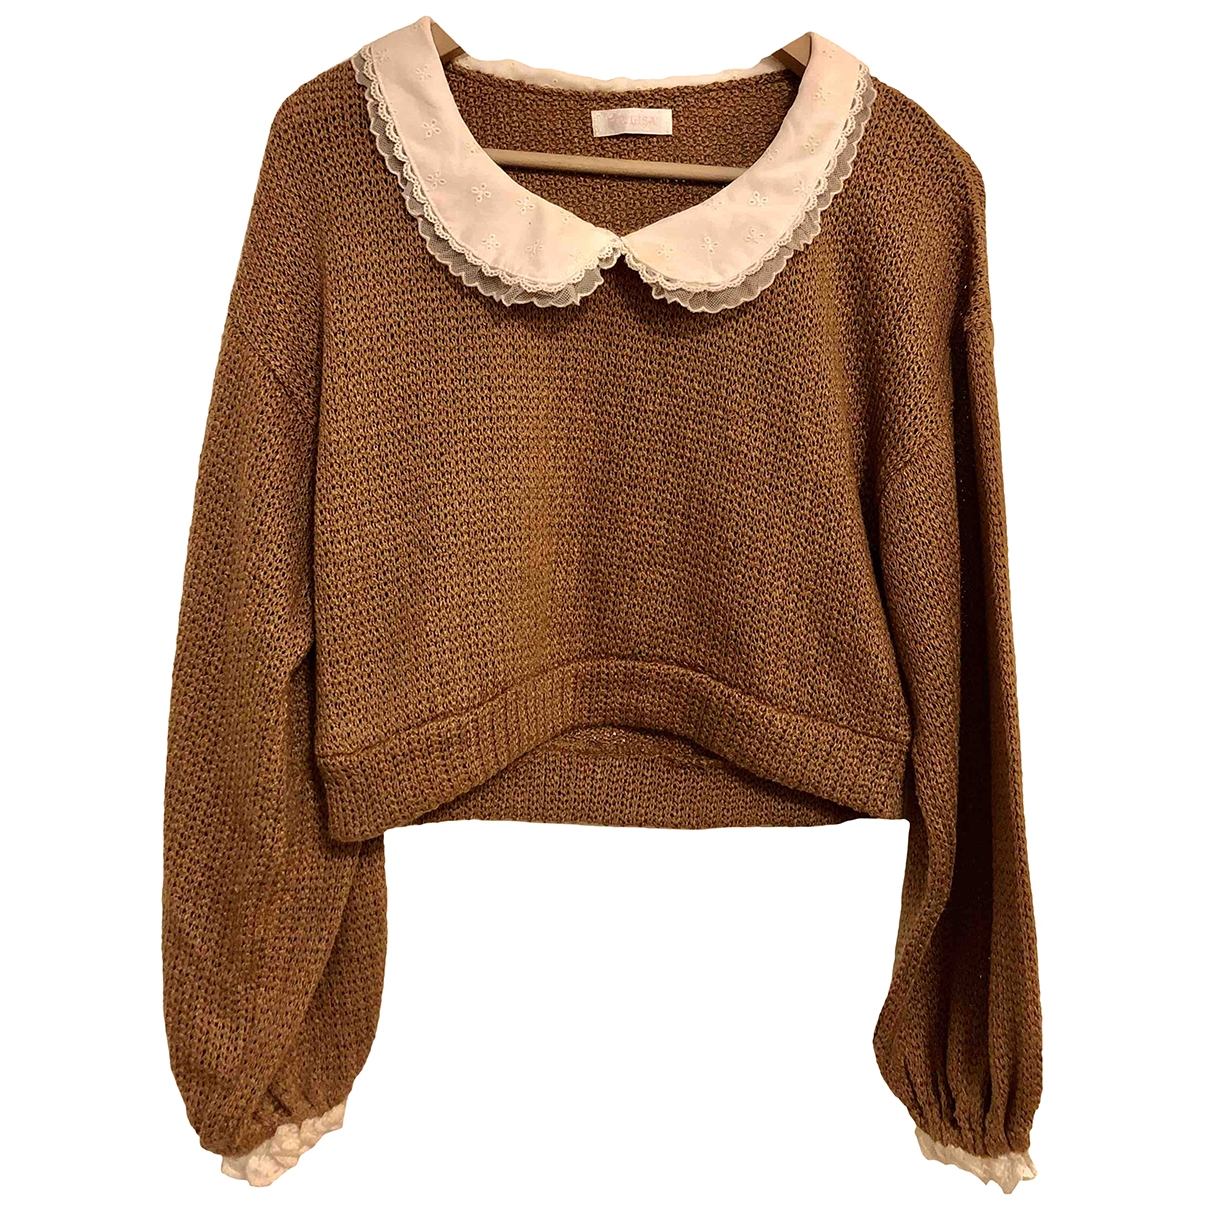 Non Signé / Unsigned \N Beige Cotton Knitwear for Women One Size FR